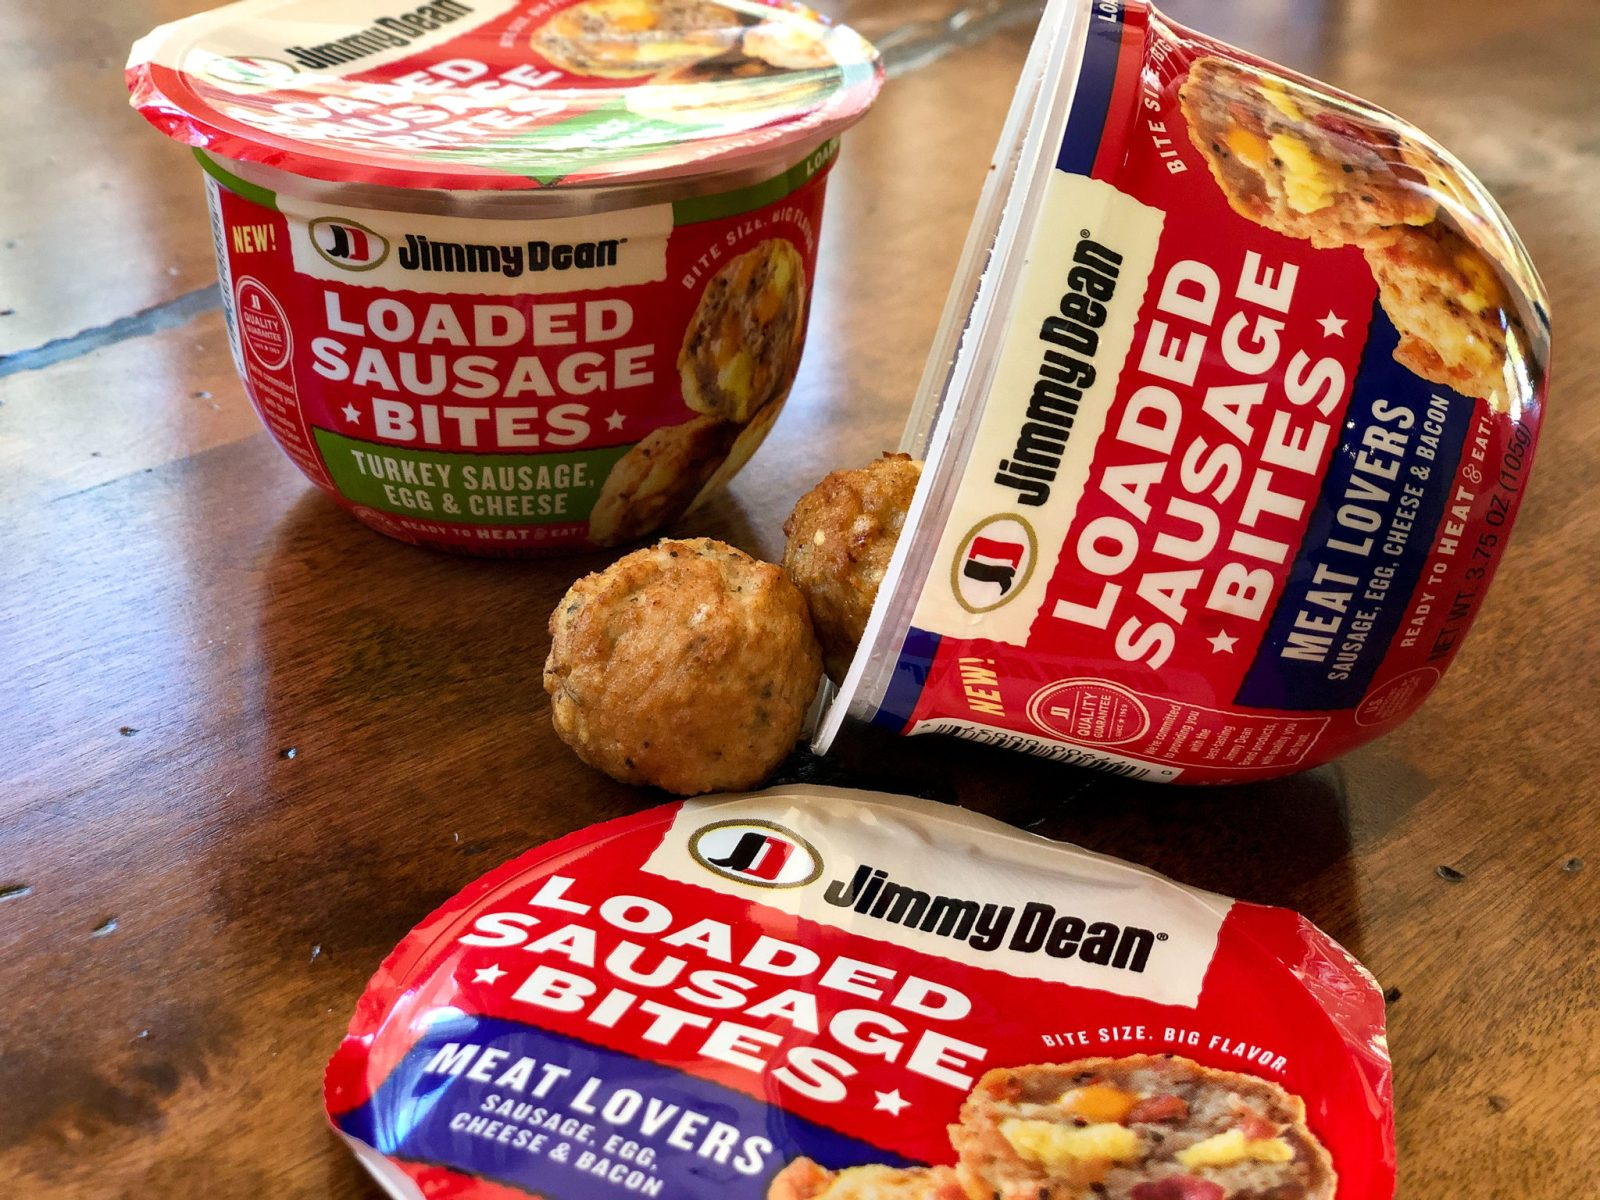 Look For New Jimmy Dean® Loaded Sausage Bites At Publix - Save With The New Digital Coupon! on I Heart Publix